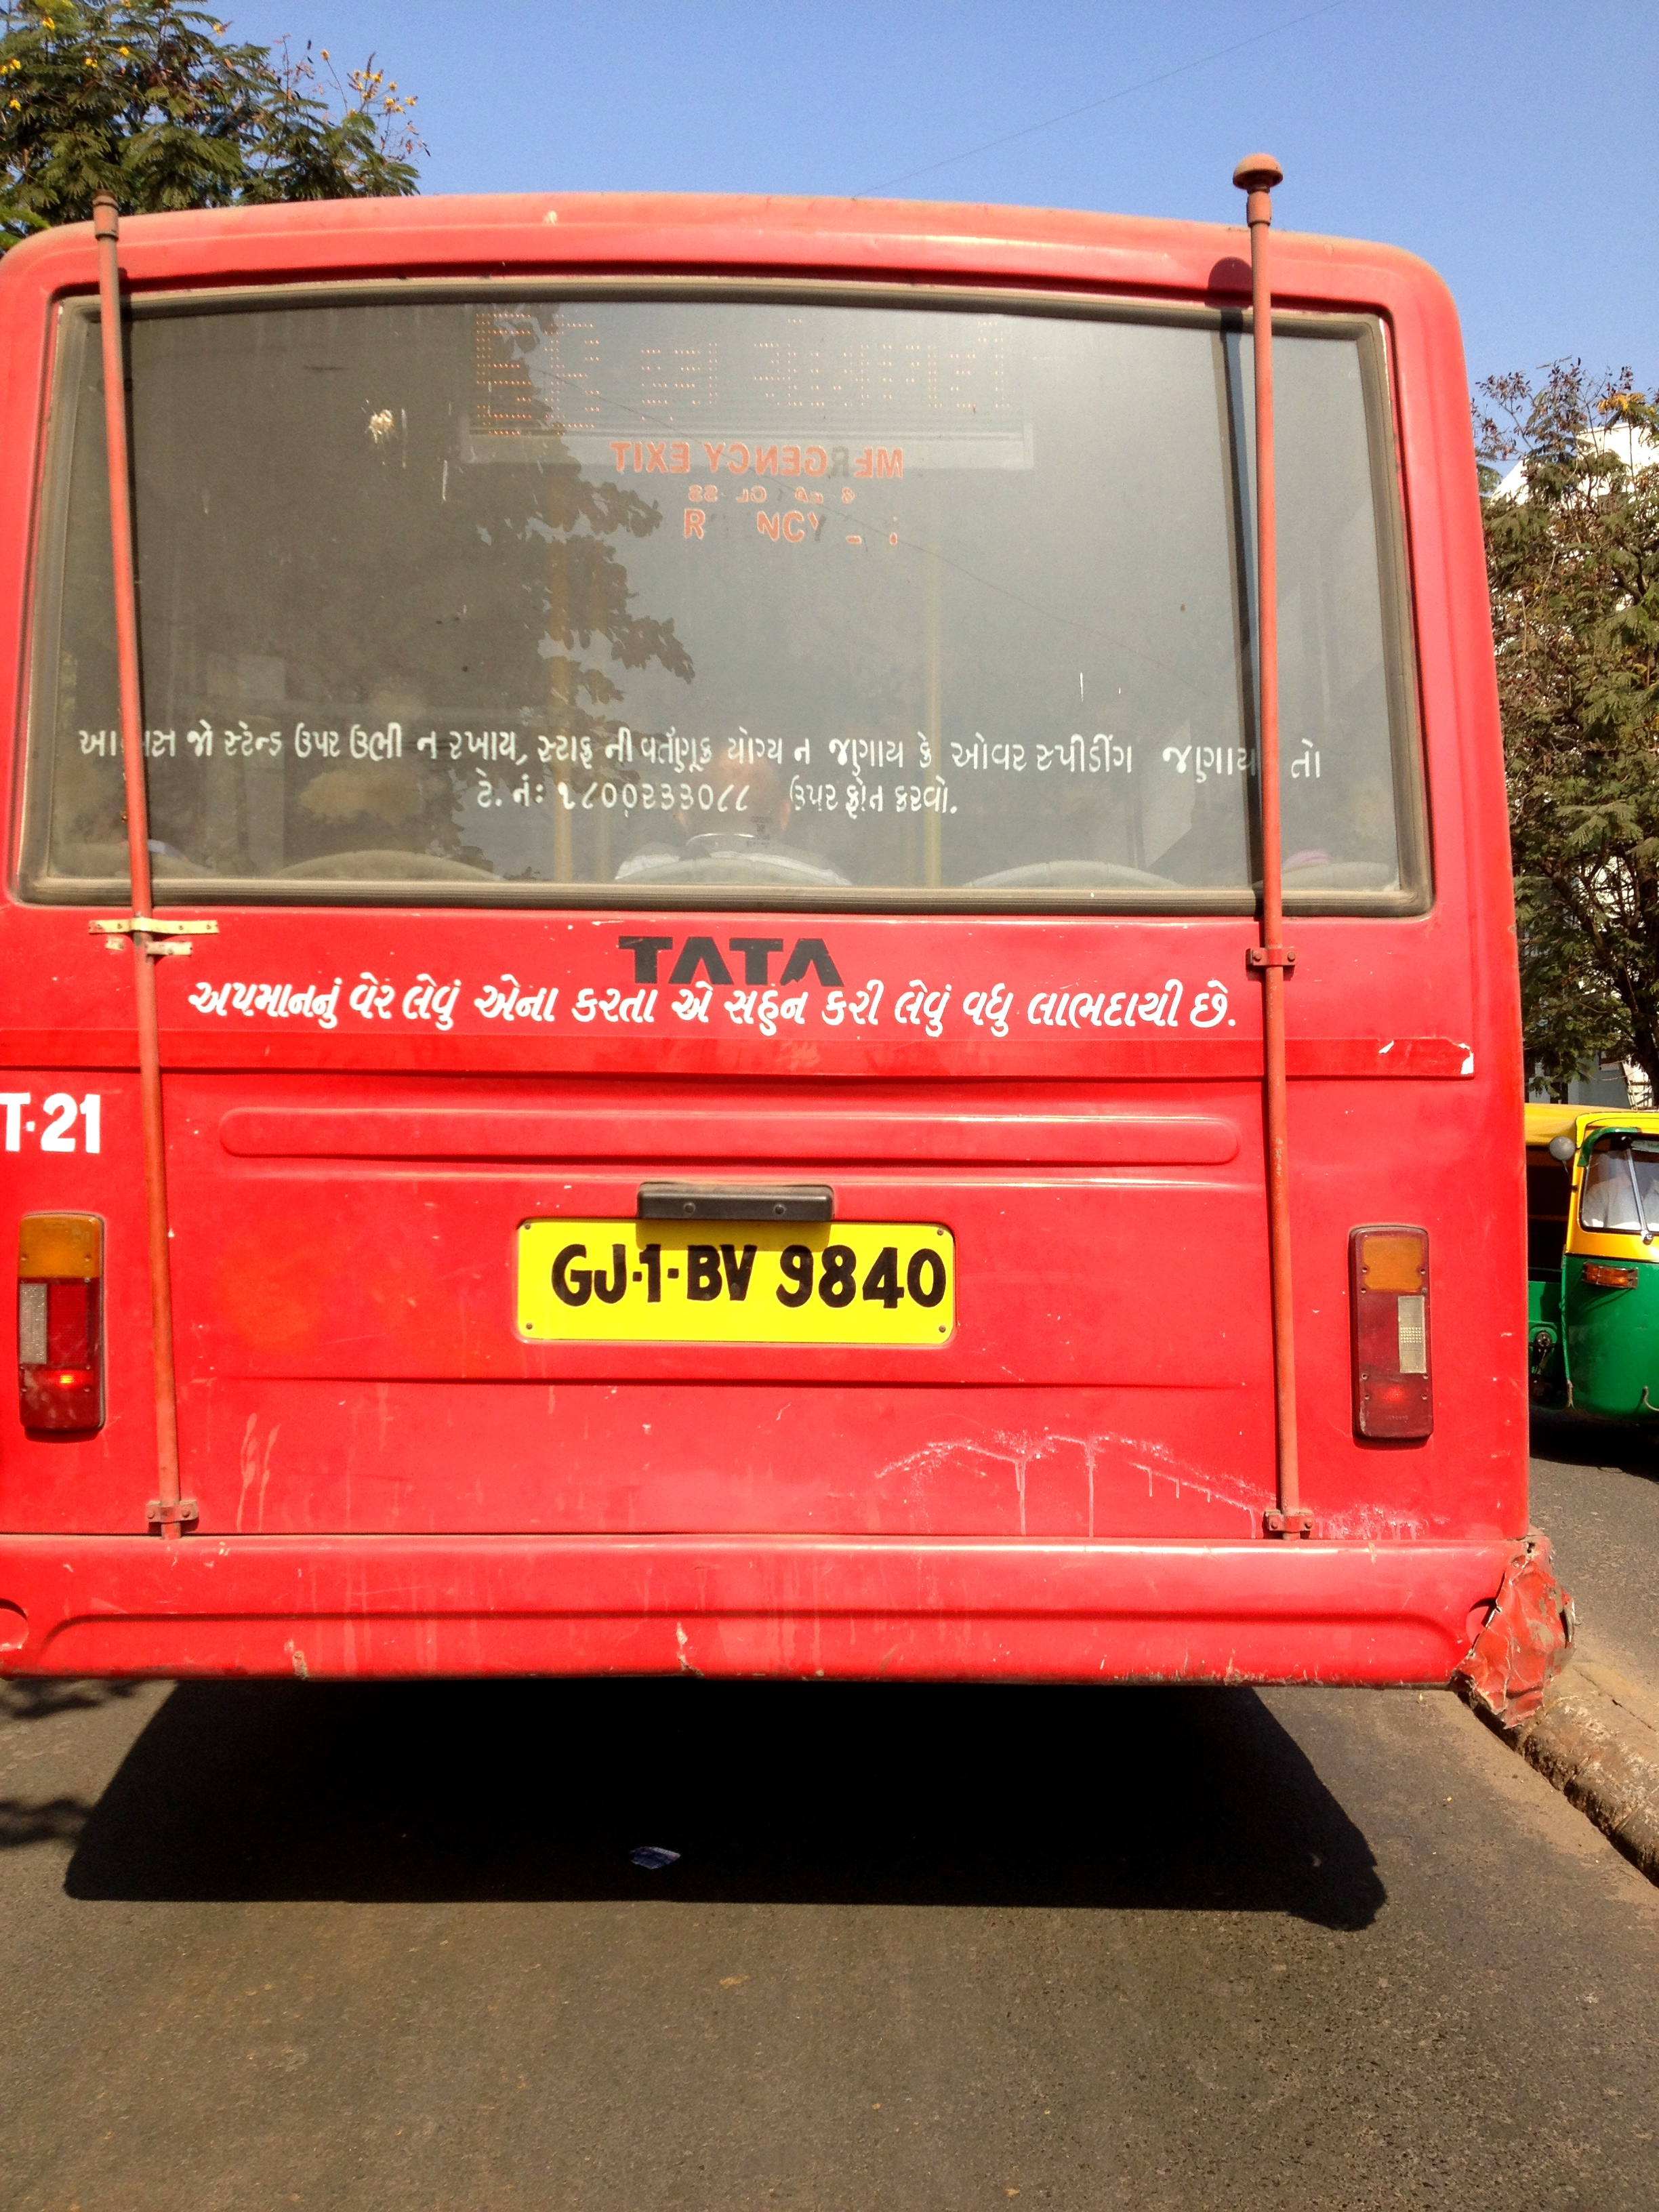 Photo © Neelkanth Mehta | Gujarati quote on AMTS bus